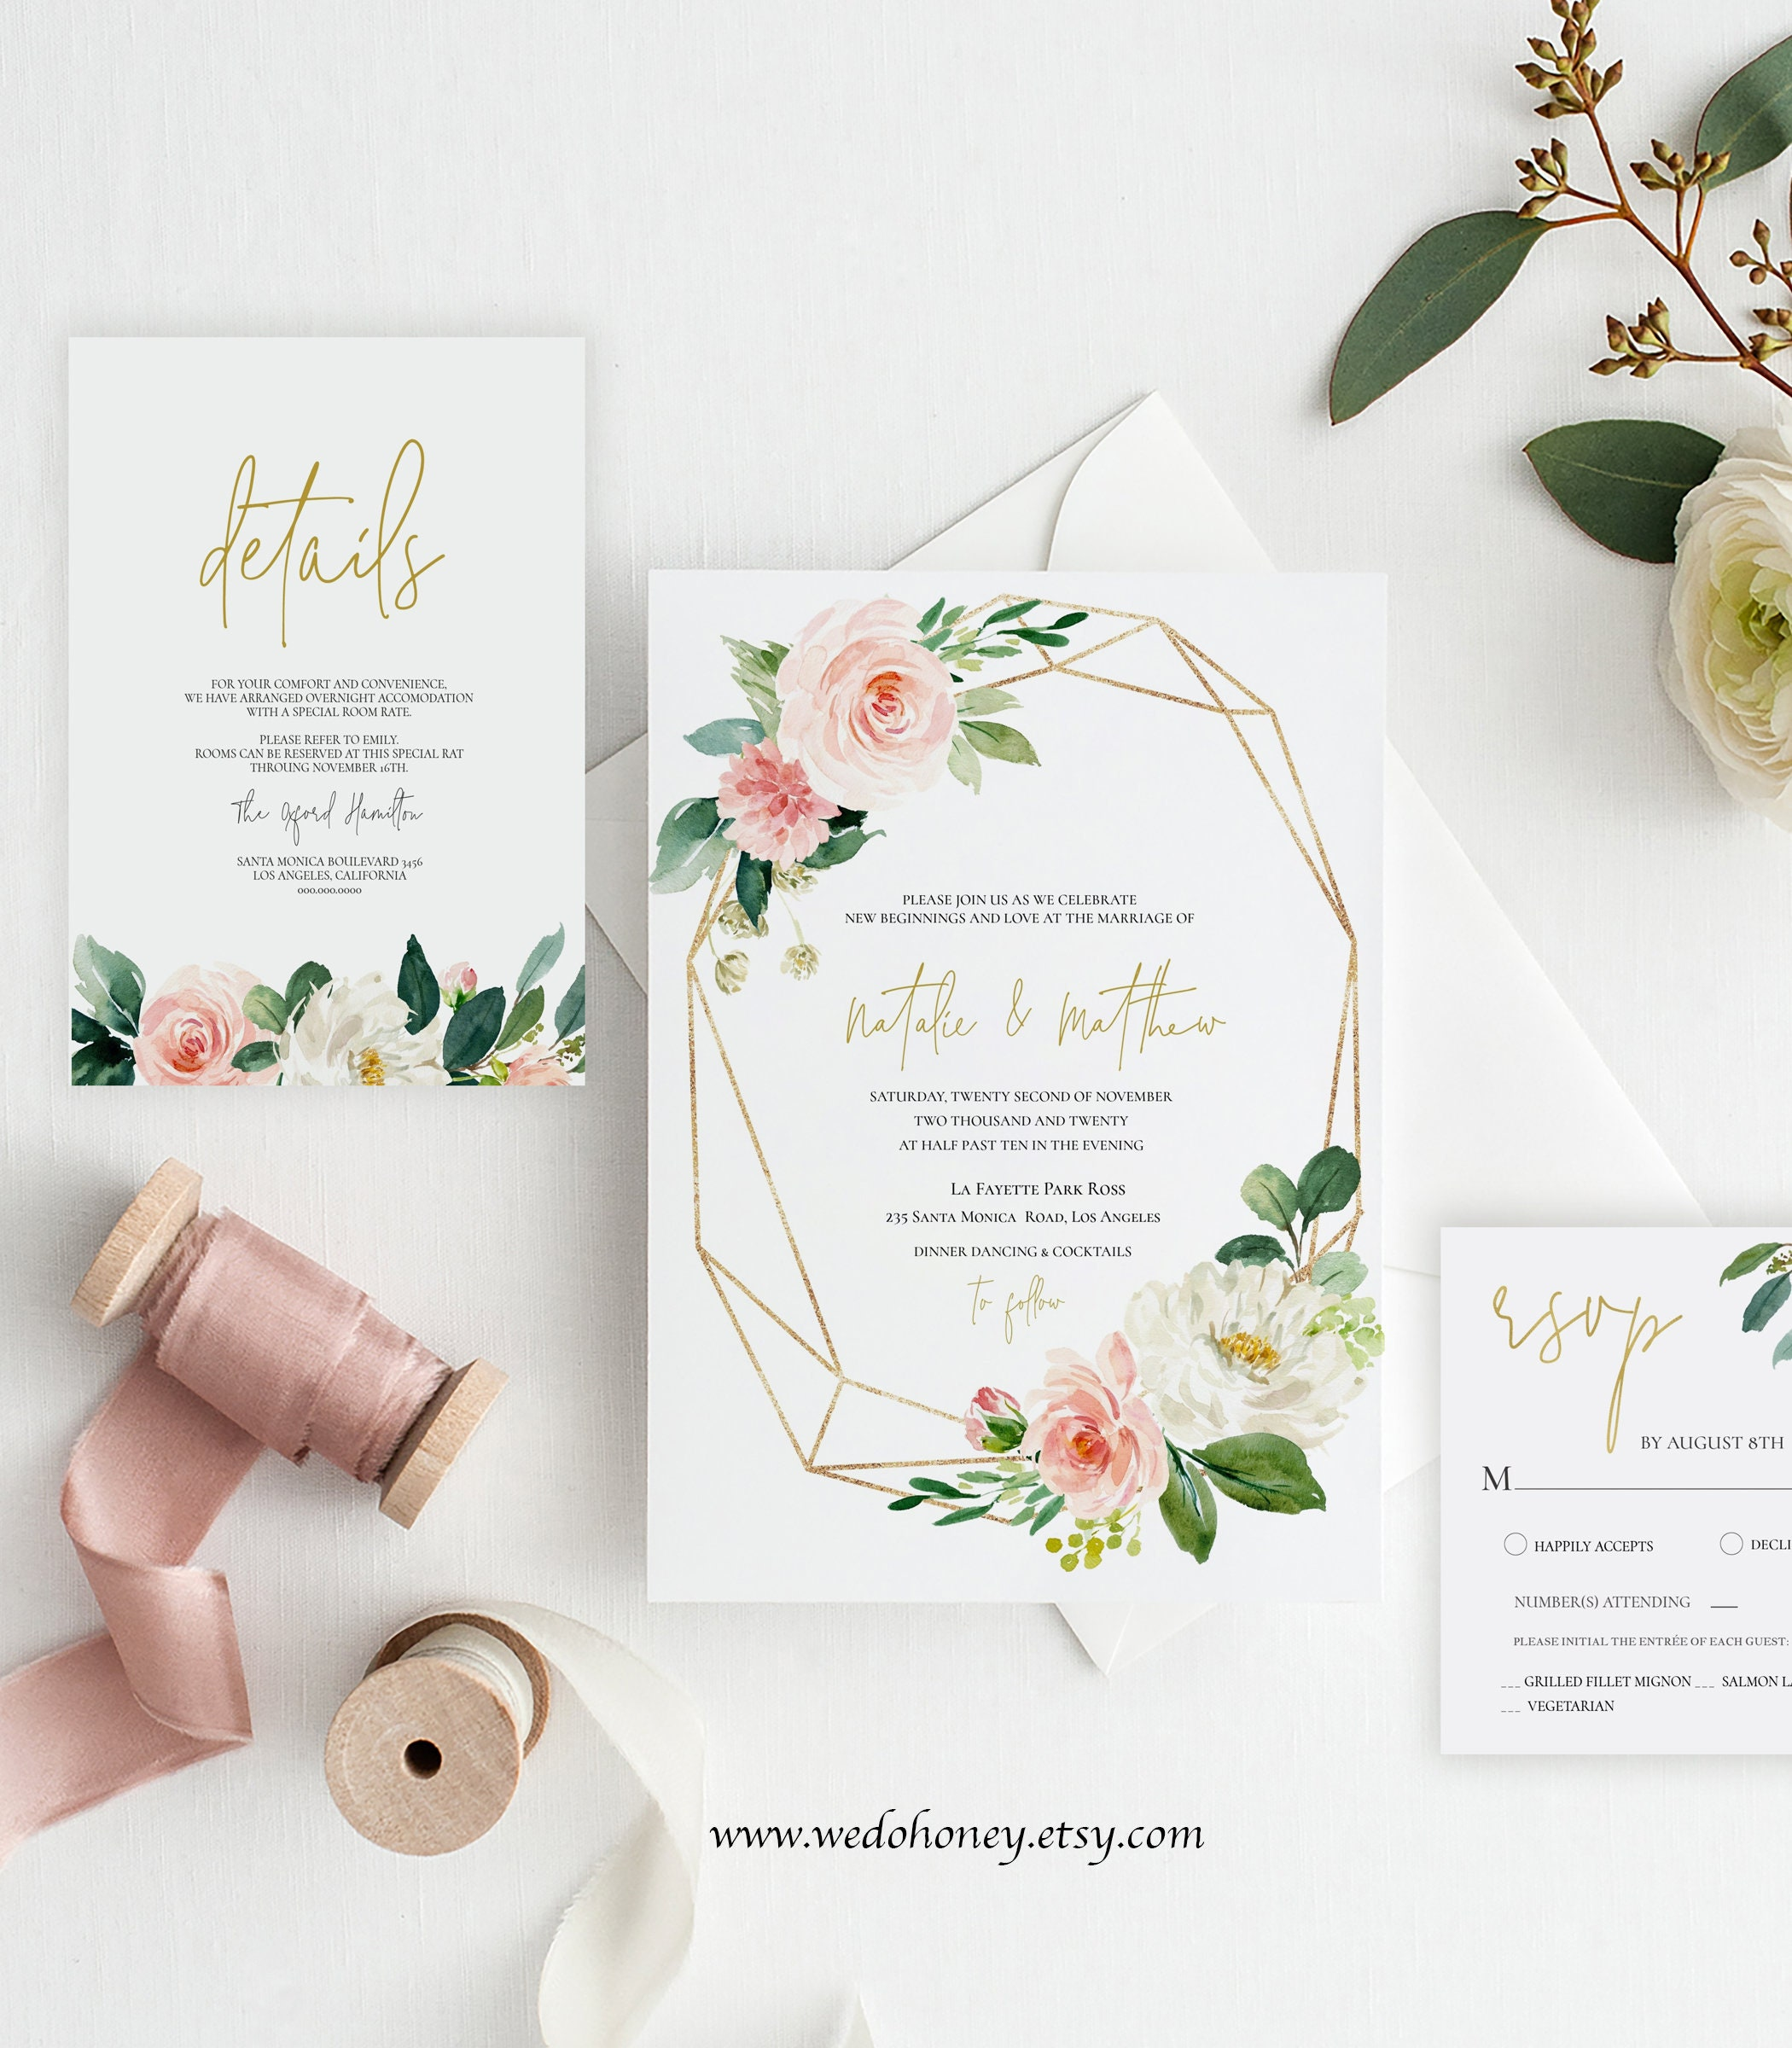 Editable Wedding Suite Invitation, Watercolor Pink Floral, Gold Frame, Boho, Instant Download, Editable Text with Corjl #039